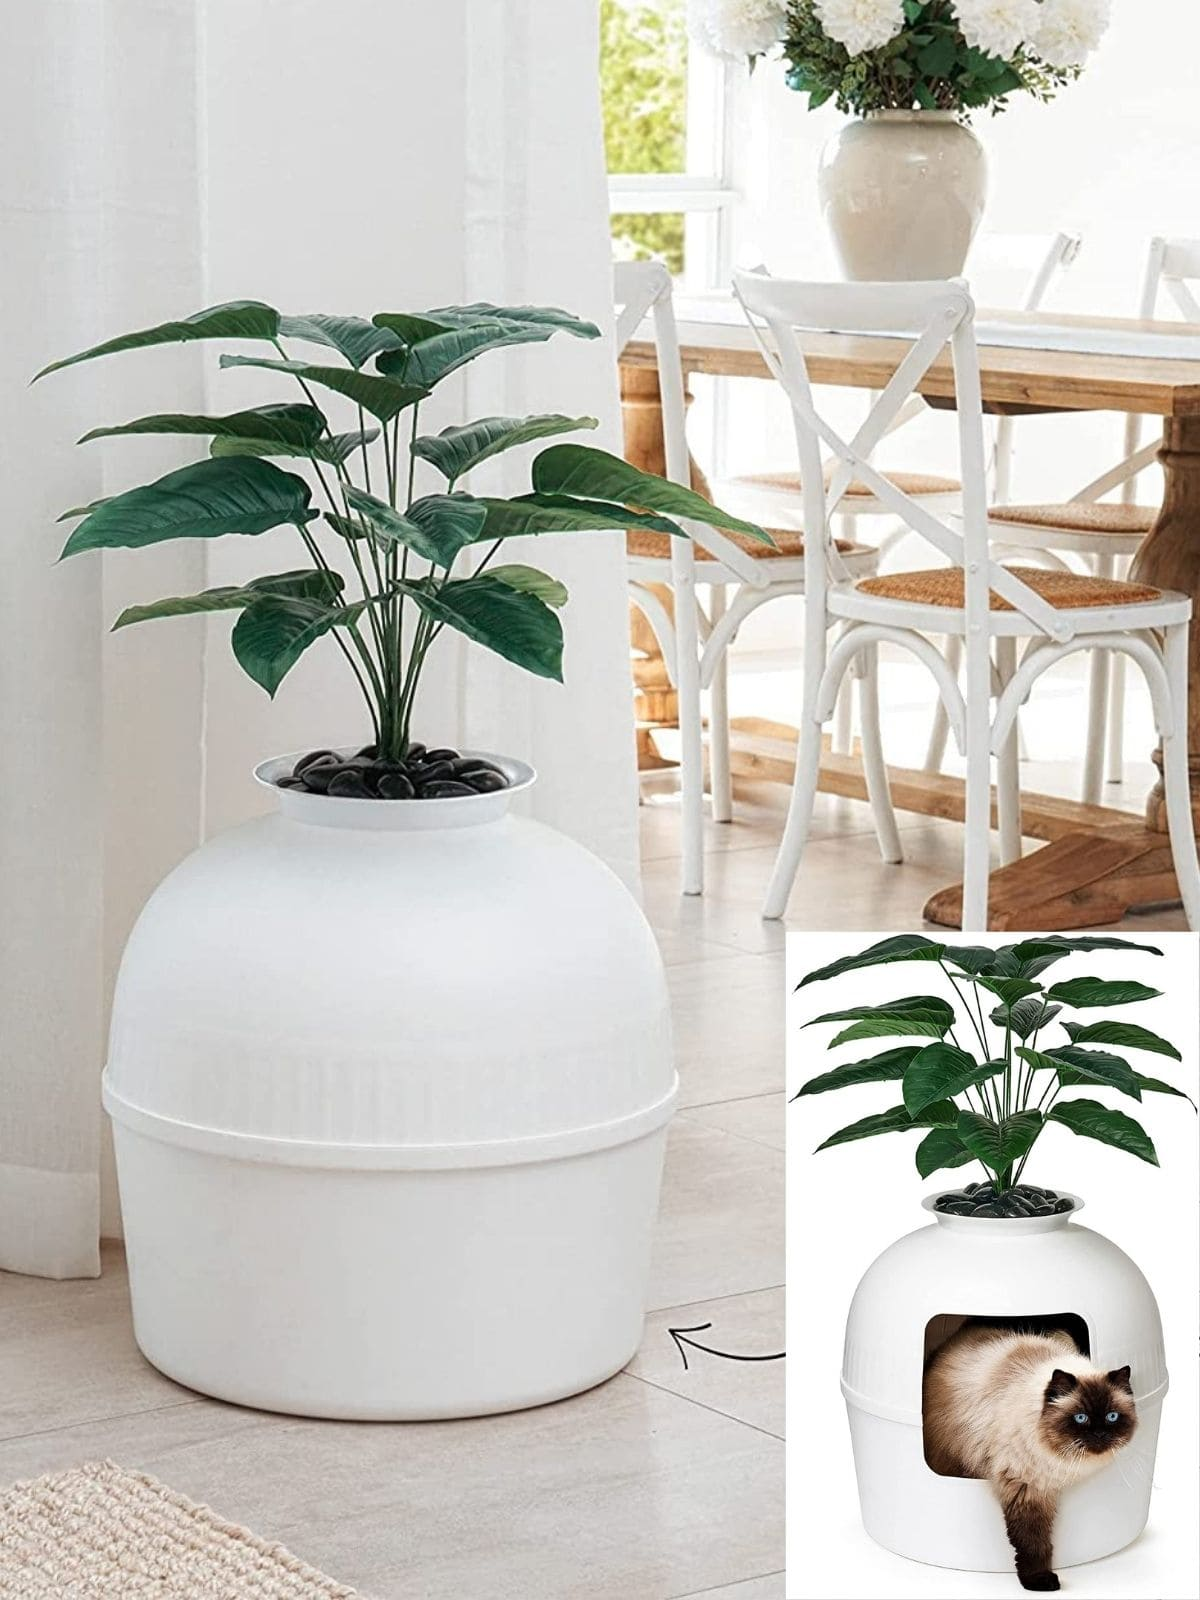 pet furniture 19 - 18 amazing pet furniture ideas that are perfect solutions for small spaces